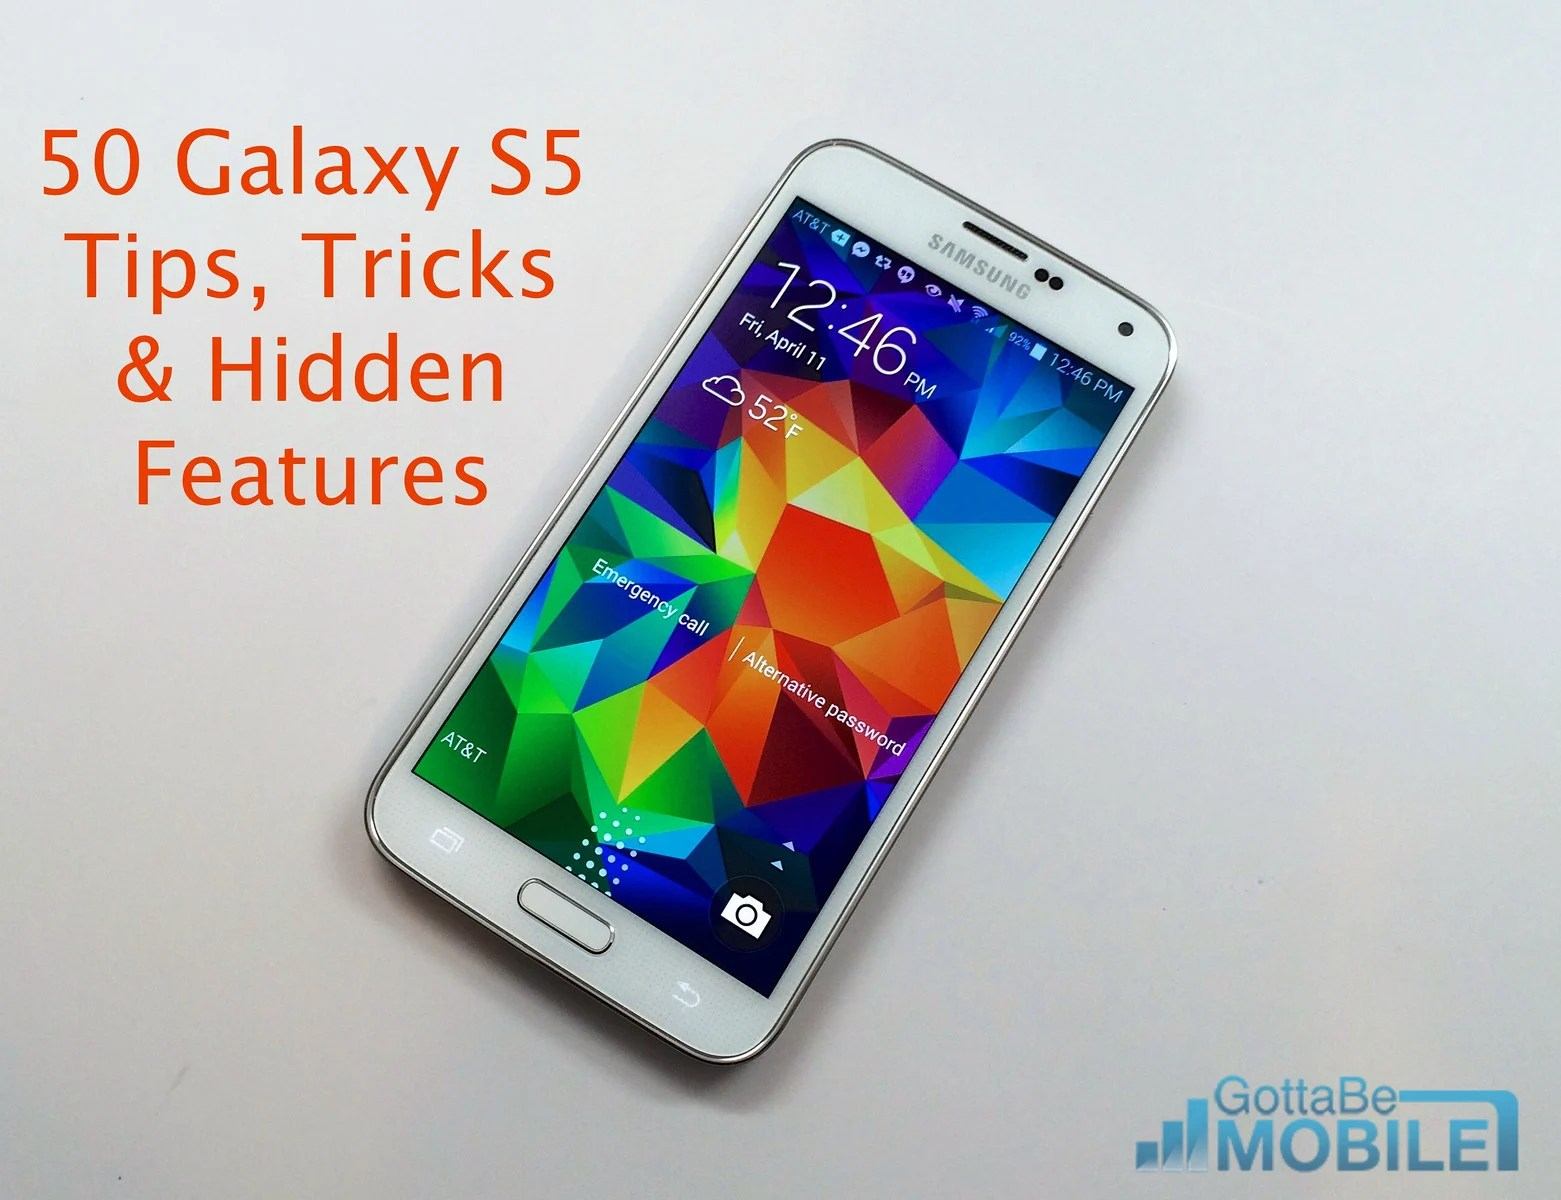 50 Galaxy S5 Tips, Tricks and Hidden Features